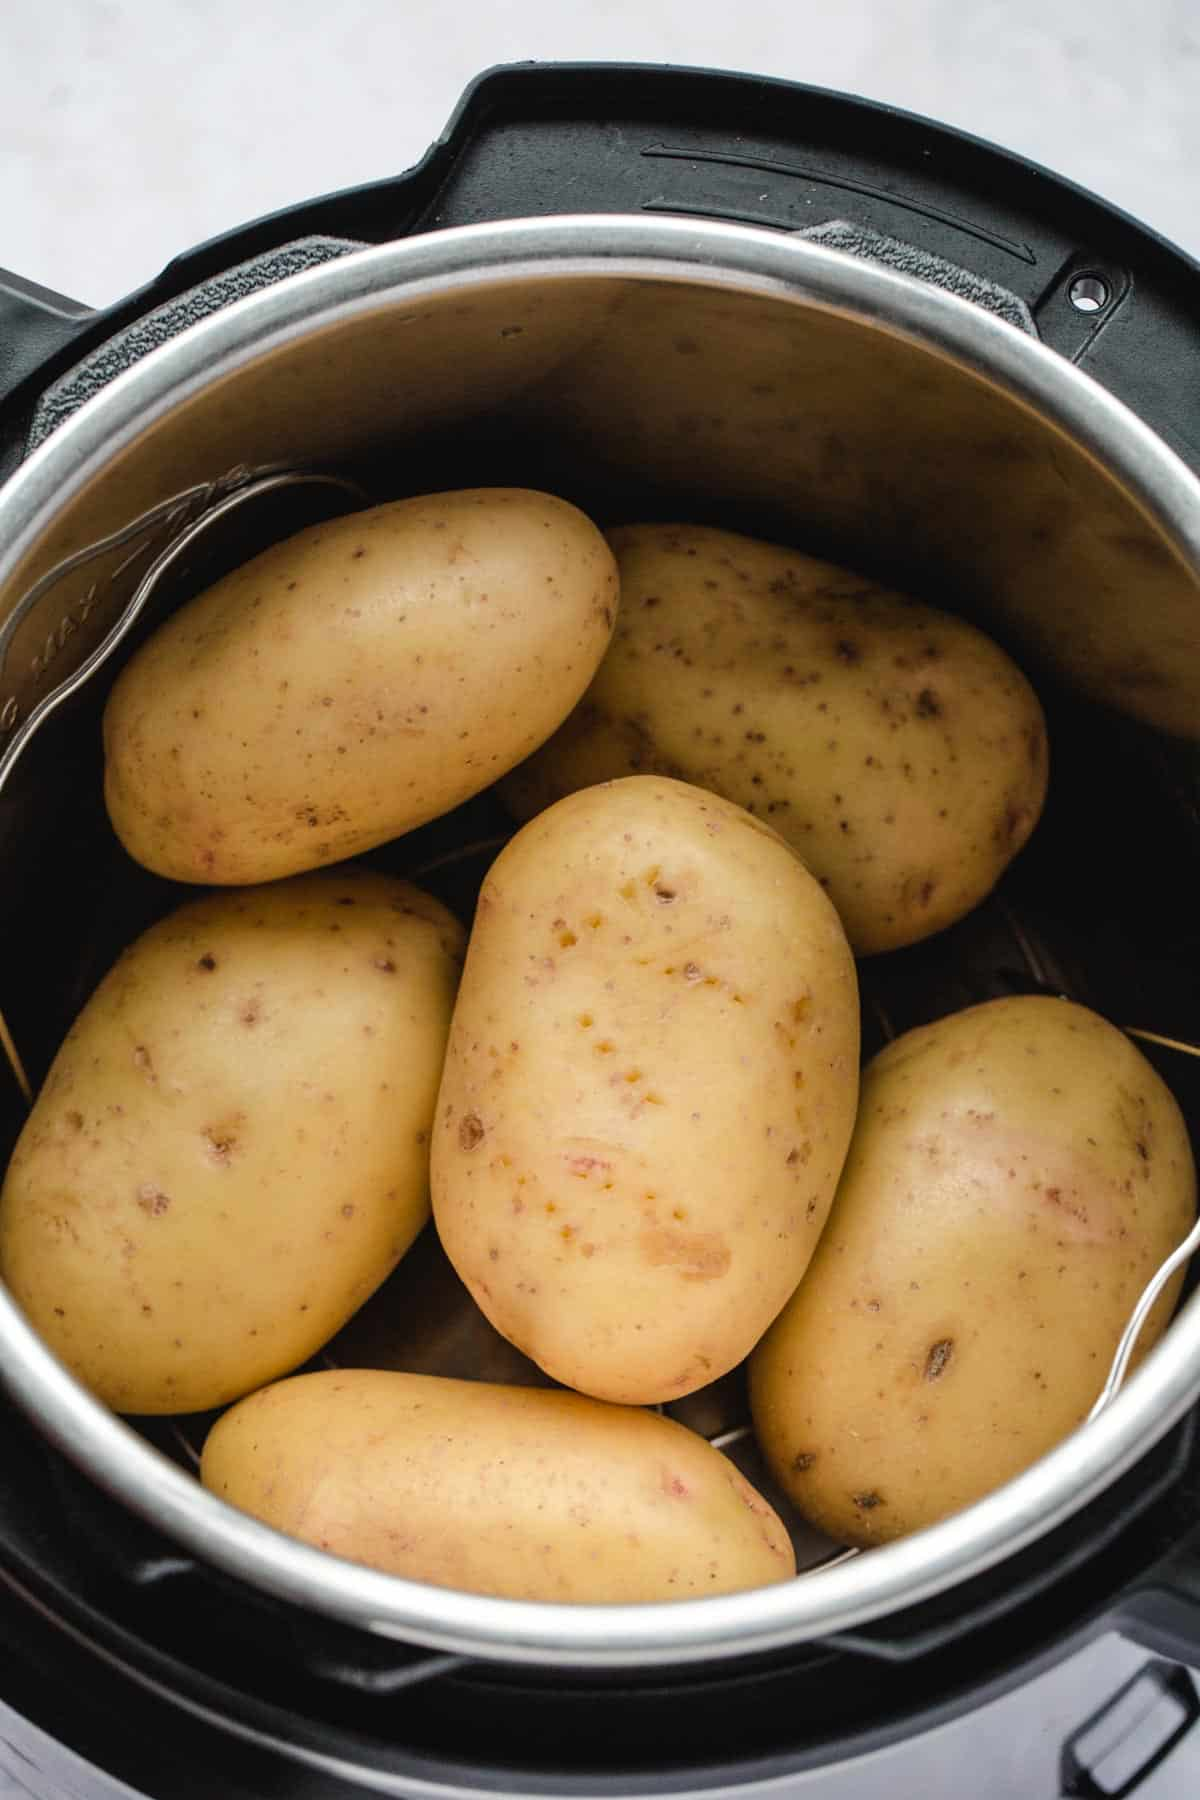 Pricked potatoes in the Instant Pot